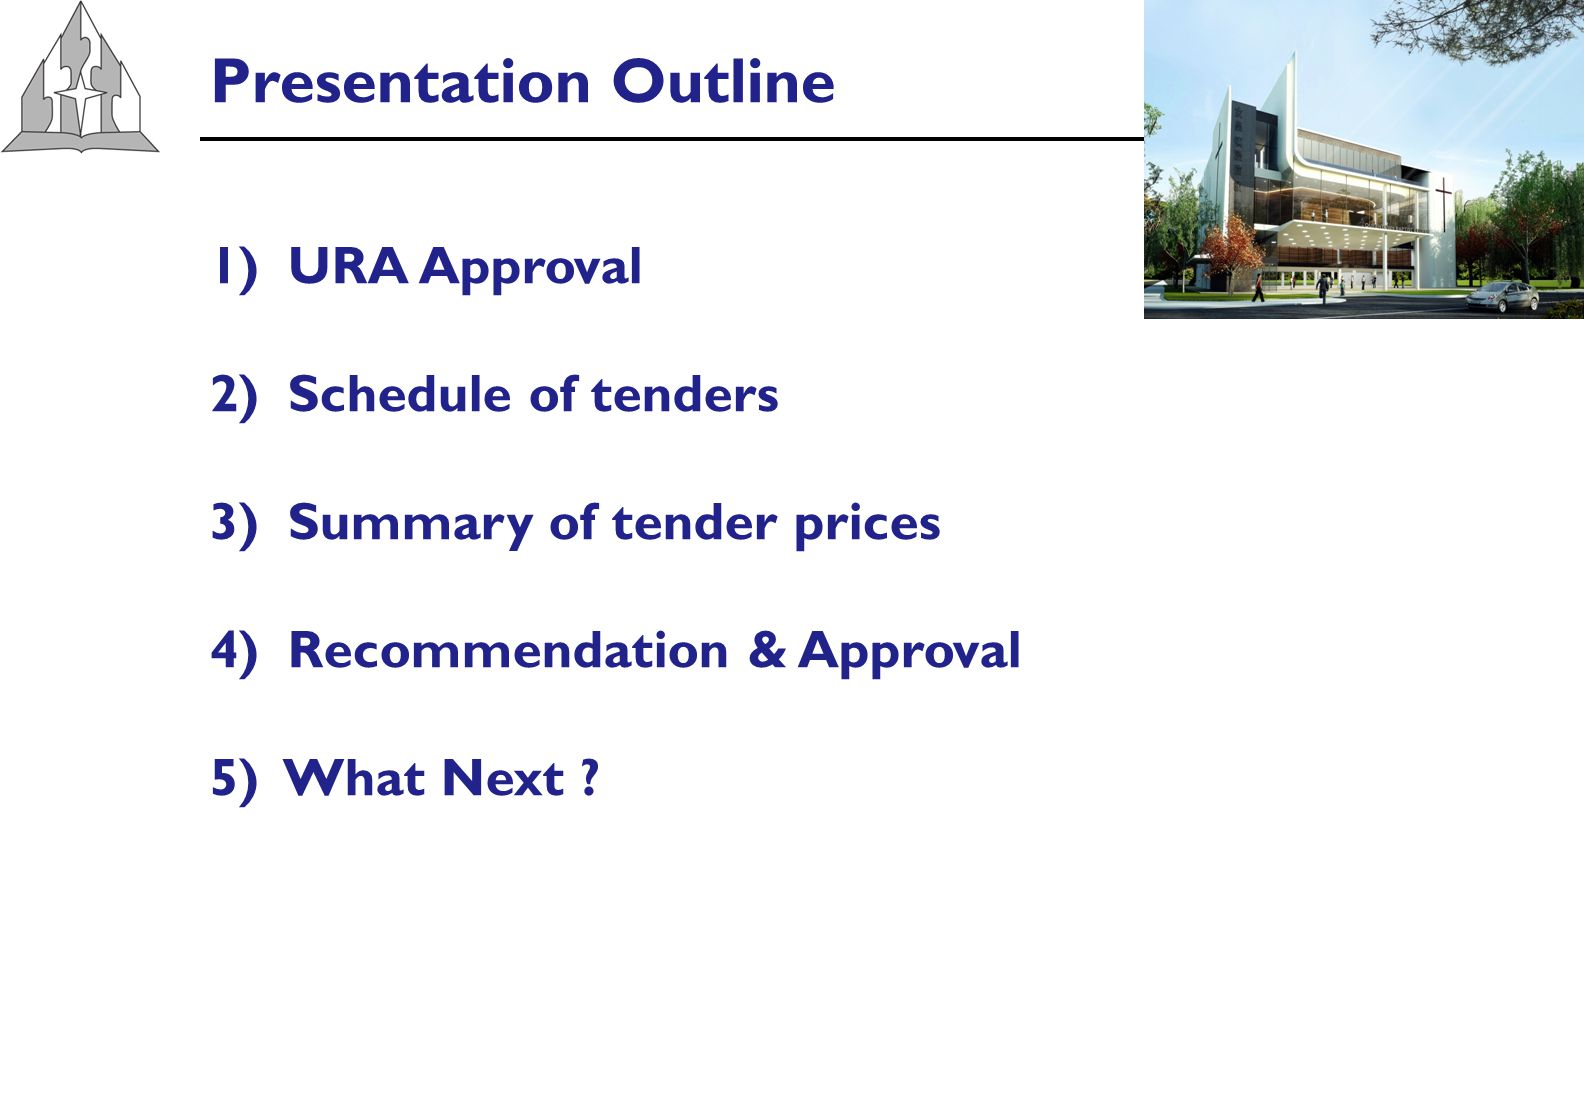 Presentation Outline 1)URA Approval 2)Schedule of tenders 3)Summary of tender prices 4)Recommendation & Approval 5) What Next